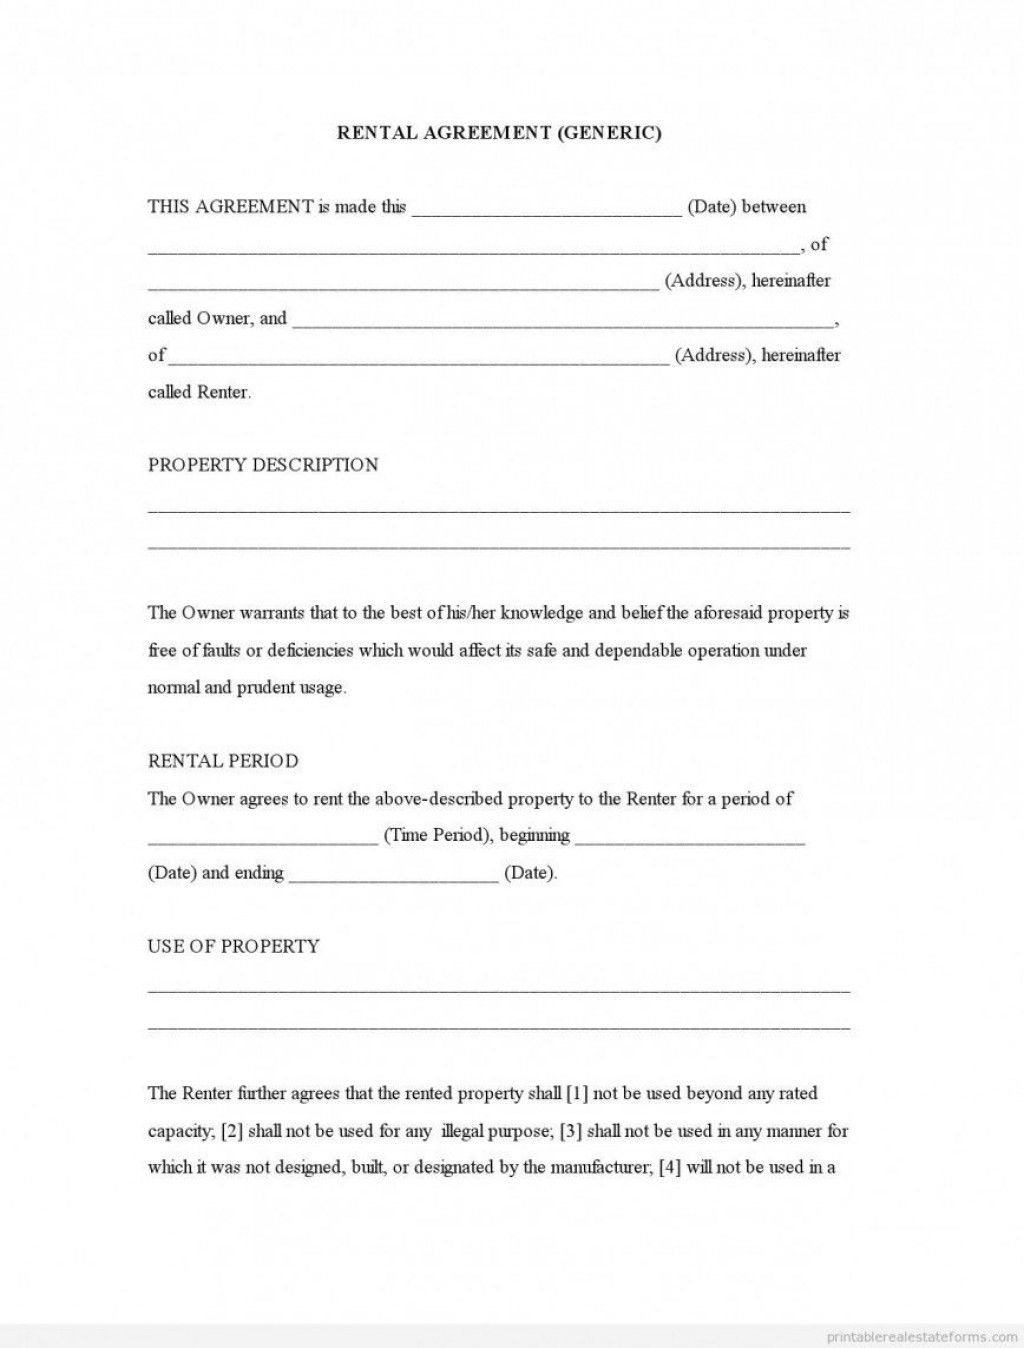 002 Fascinating Rental Agreement Contract Free Download Example  Tenancy Form Uk House EquipmentFull